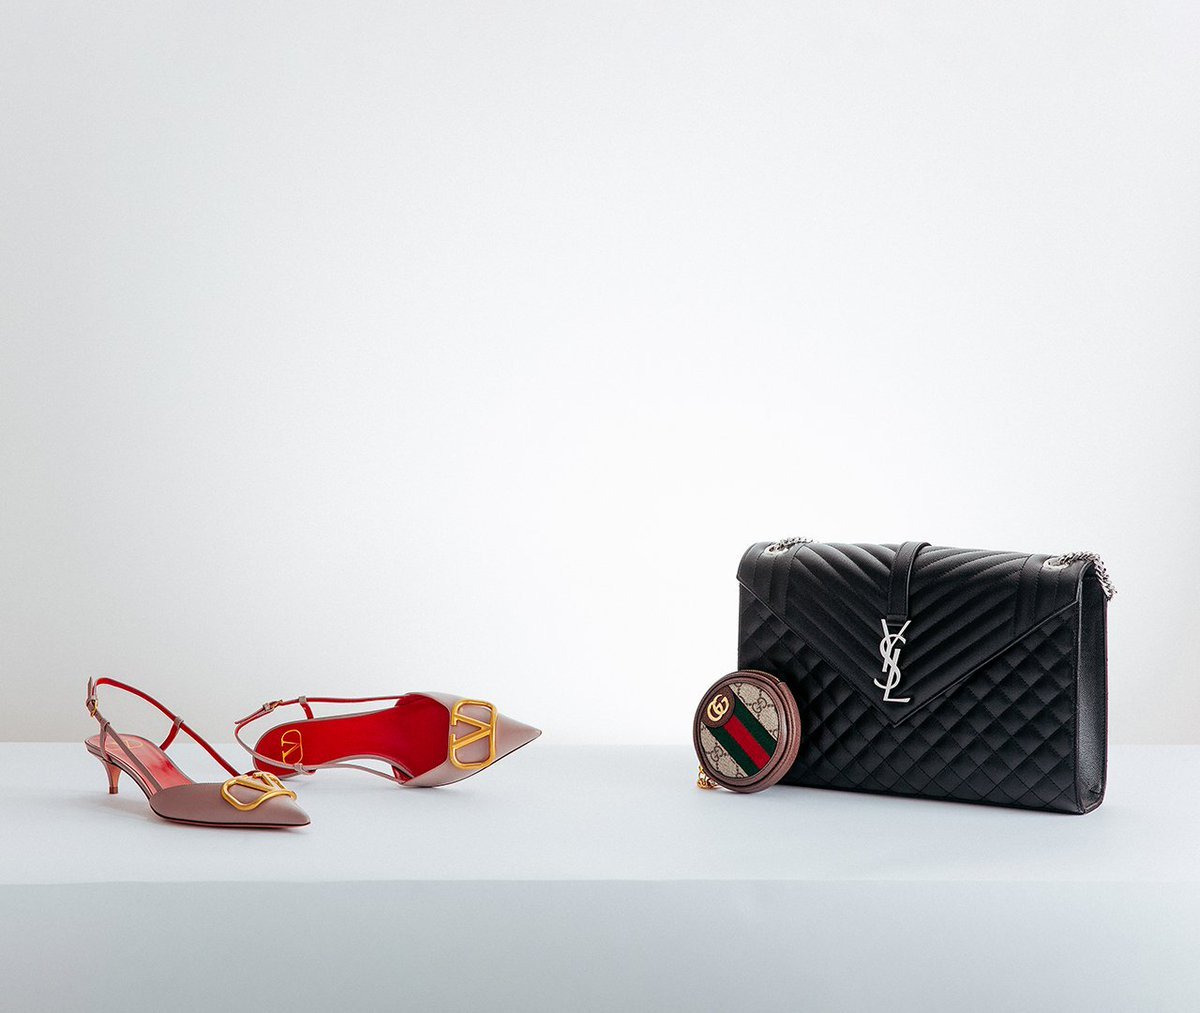 Hit refresh on your accessories wardrobe with It-bags and must-have heels for the new season:  http:// flan.nl/2kFi9aP       #YSL #GUCCI #VALENTINO #OFFWHITE #GG #SAINTLAURENT #FENDI #FF #CHLOE<br>http://pic.twitter.com/sg7RWzLKjV